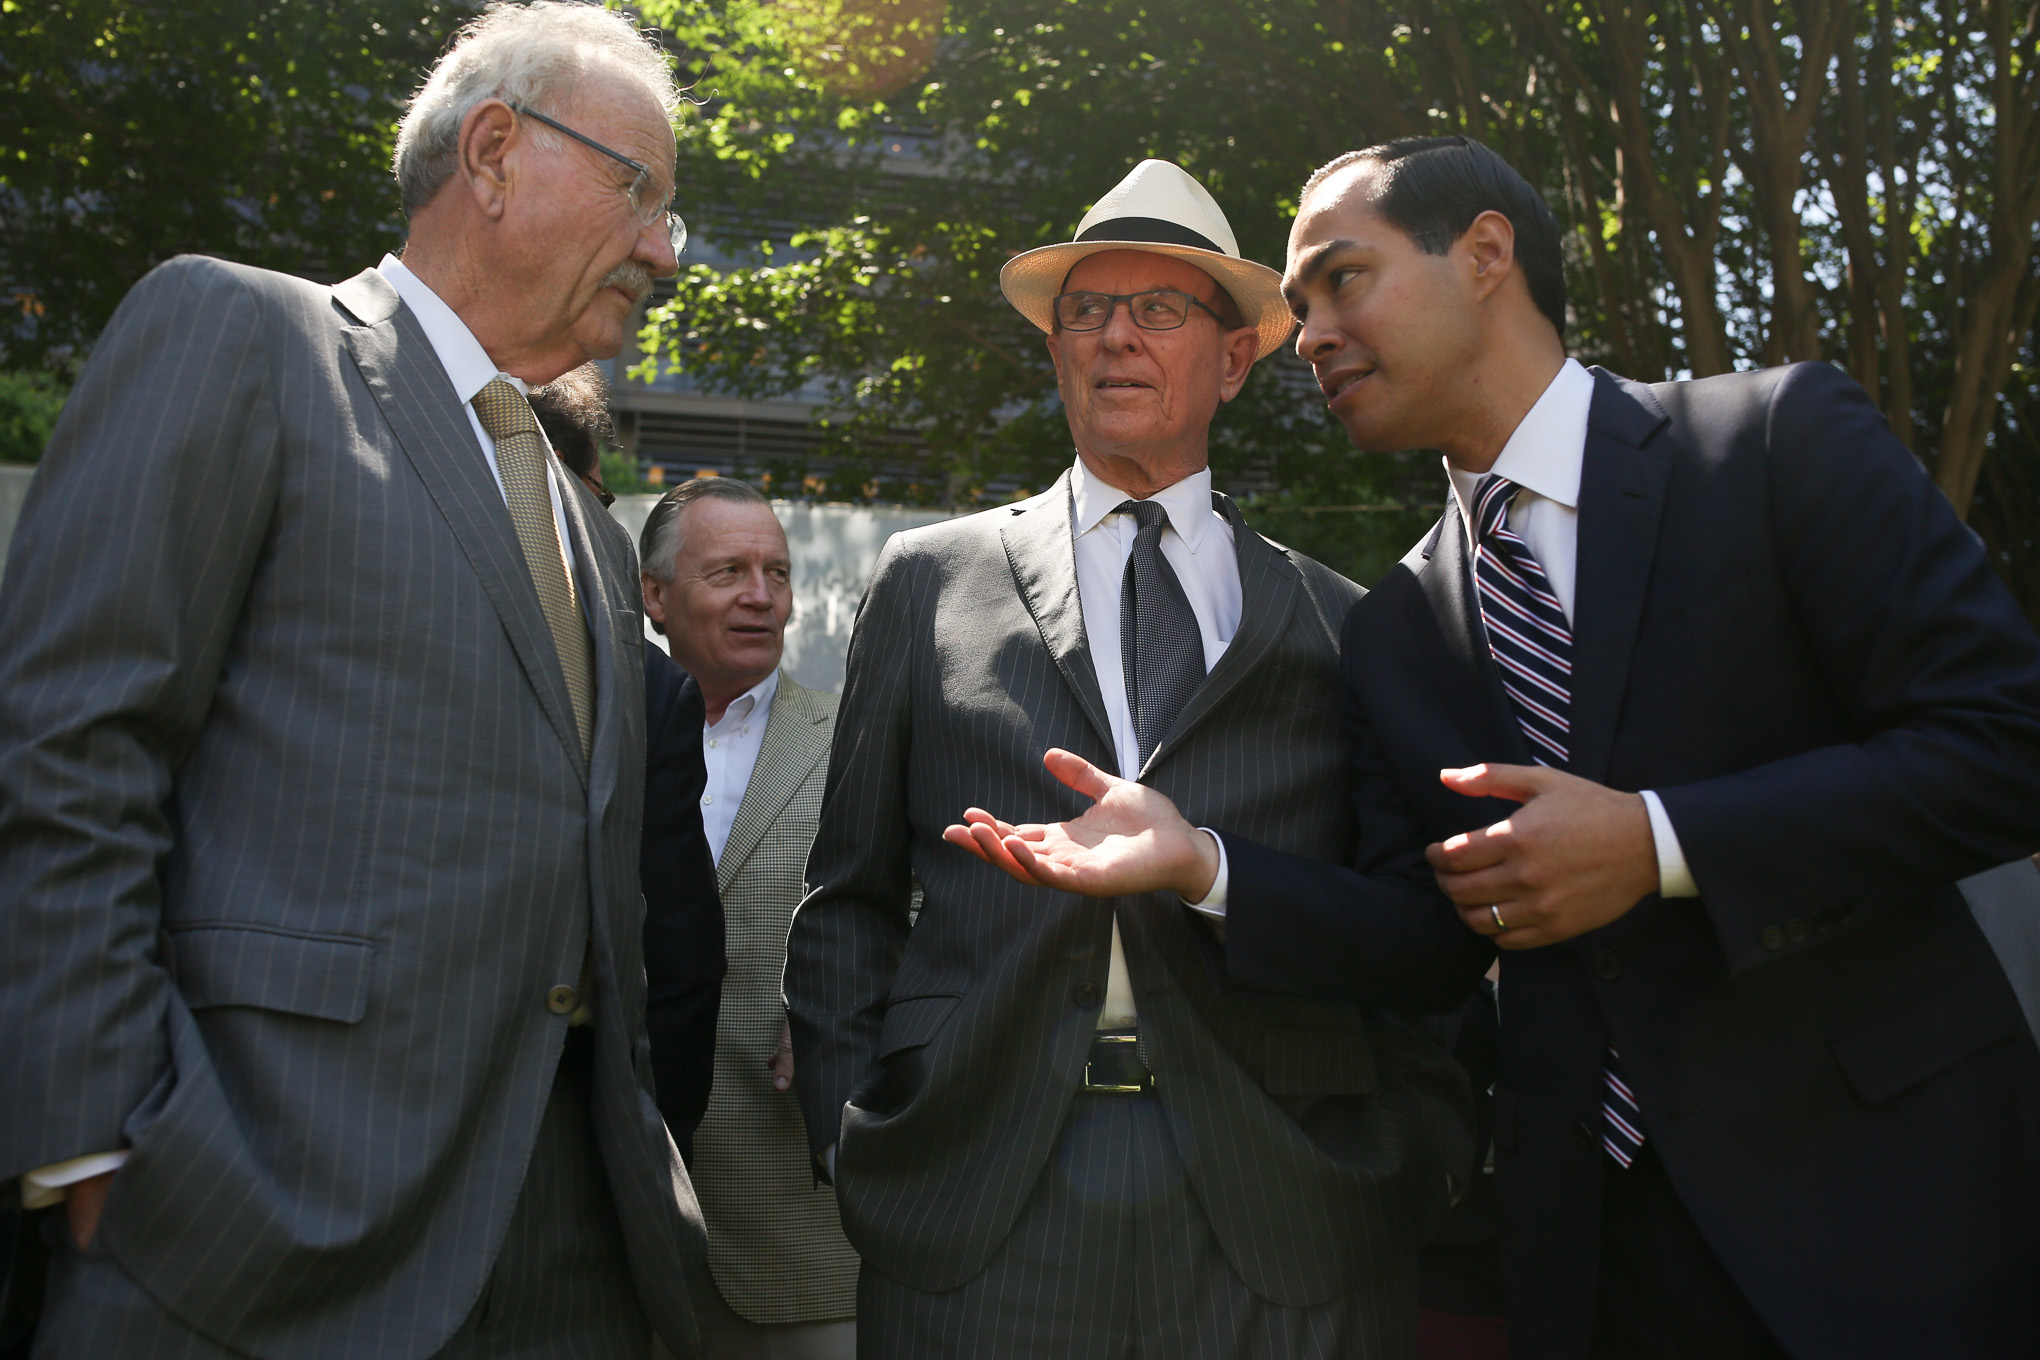 Former San Antonio Mayors (from left) Phil Hardberger, County Judge Nelson Wolff, and Julian Castro.